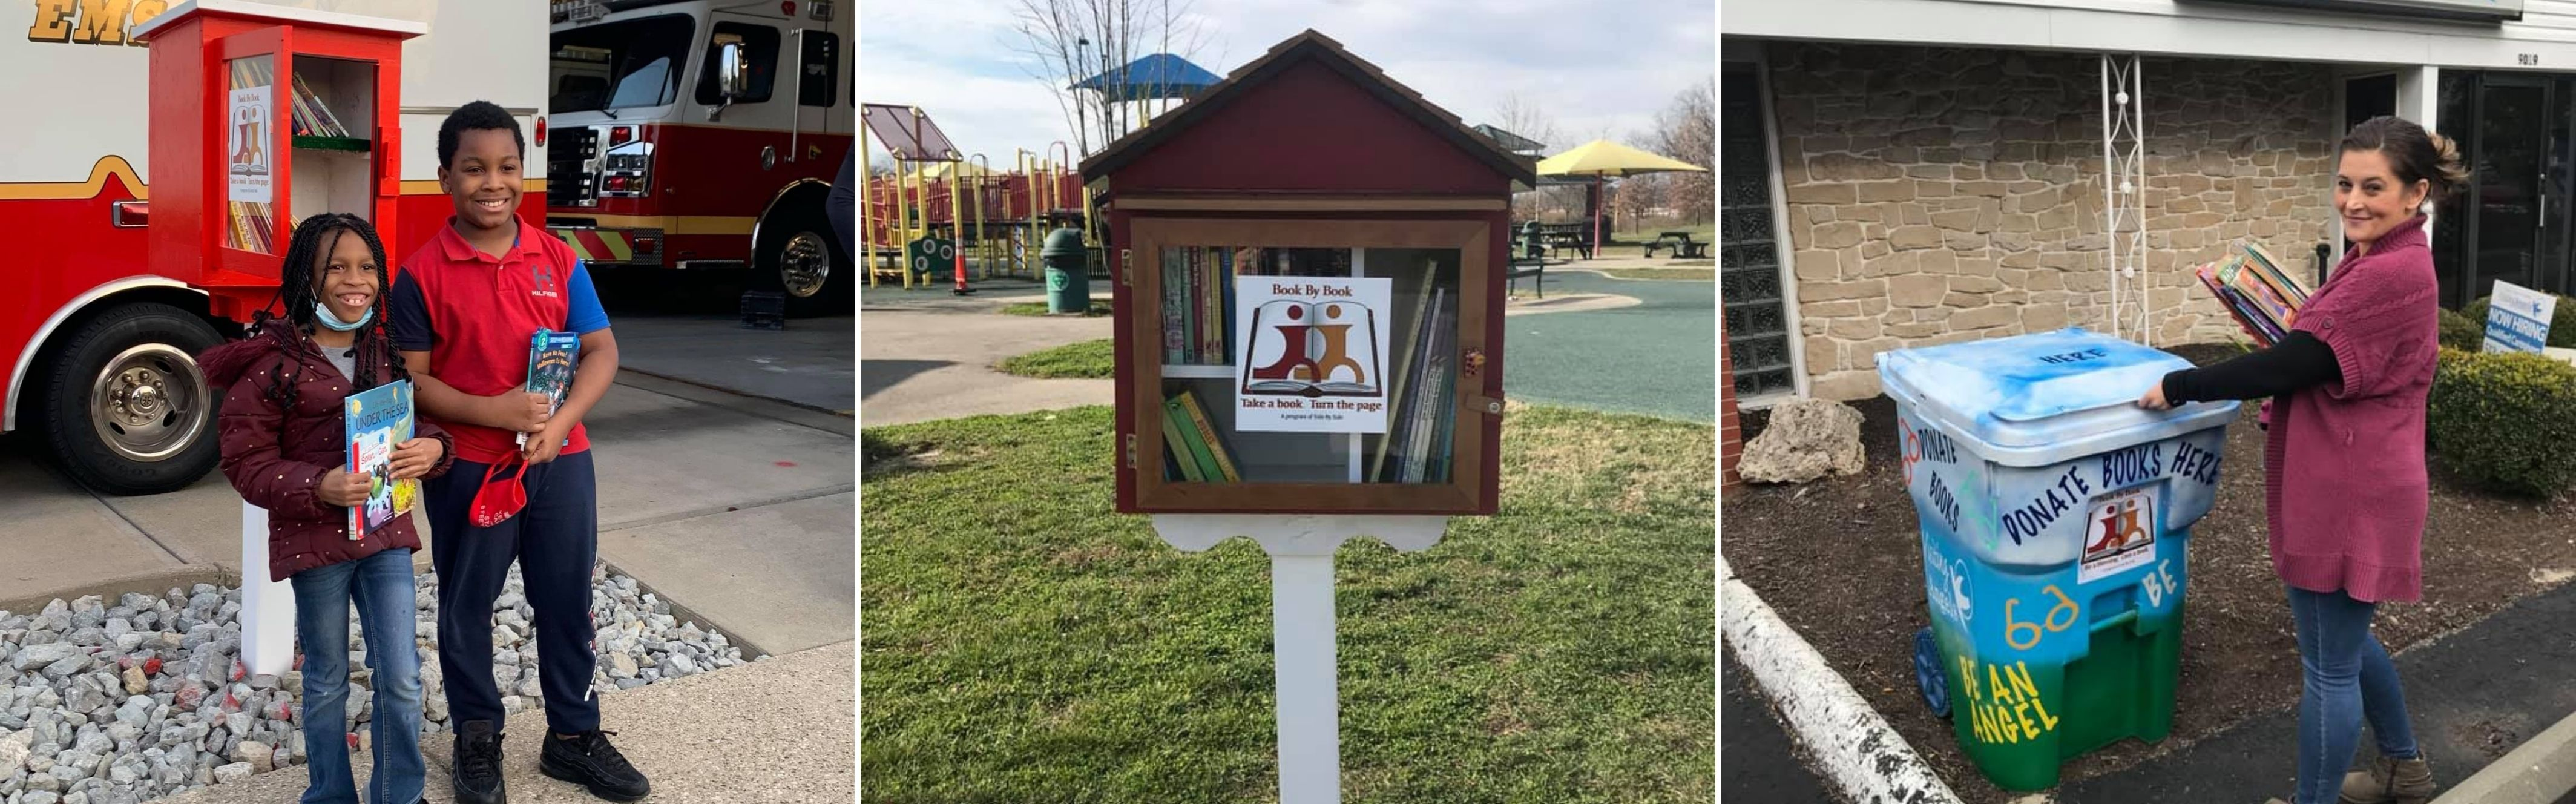 three photos: one of two children in front of little library, one of little library box in a park, one of woman putting books into donation bin